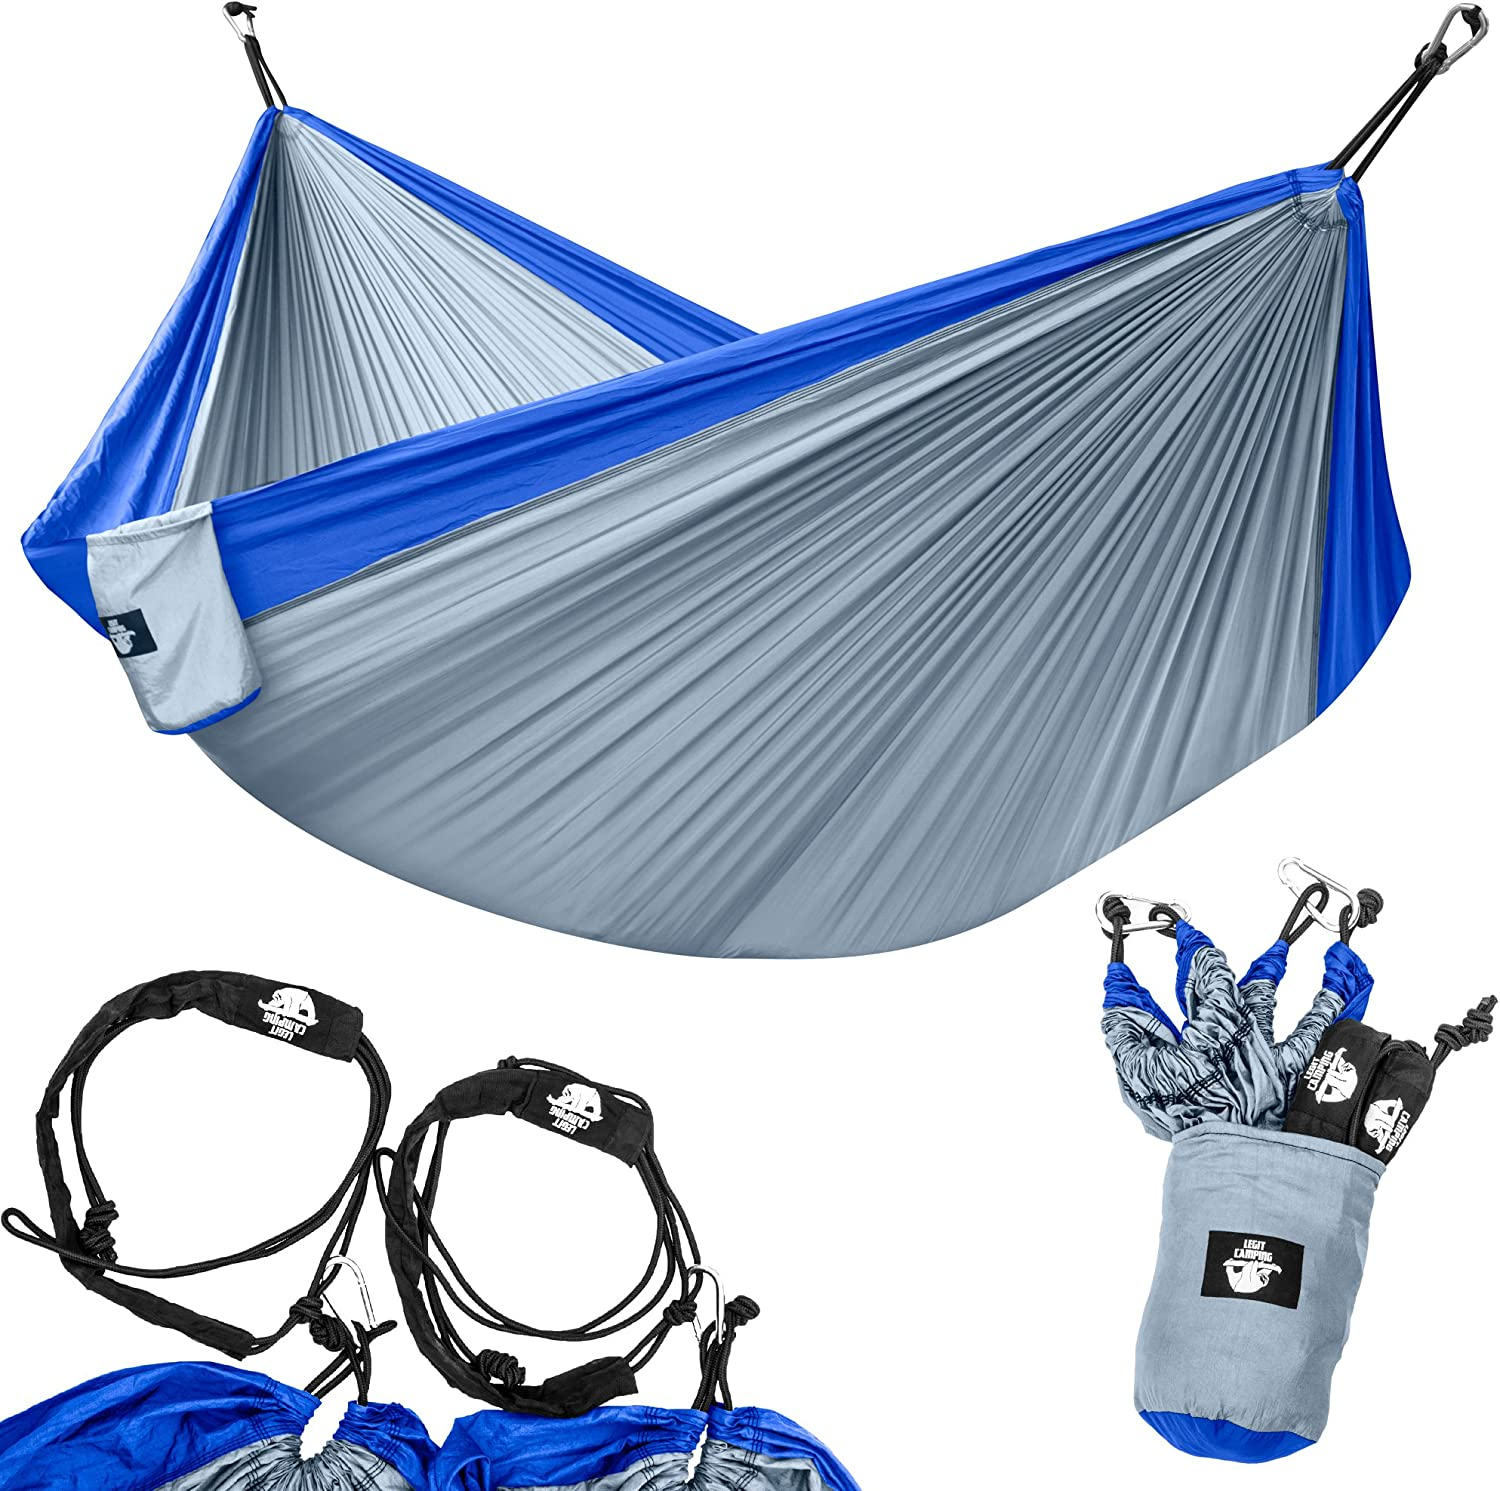 Legit Camping Portable Double Hammock - Blue/Grey - 400 lb Weight Capacity